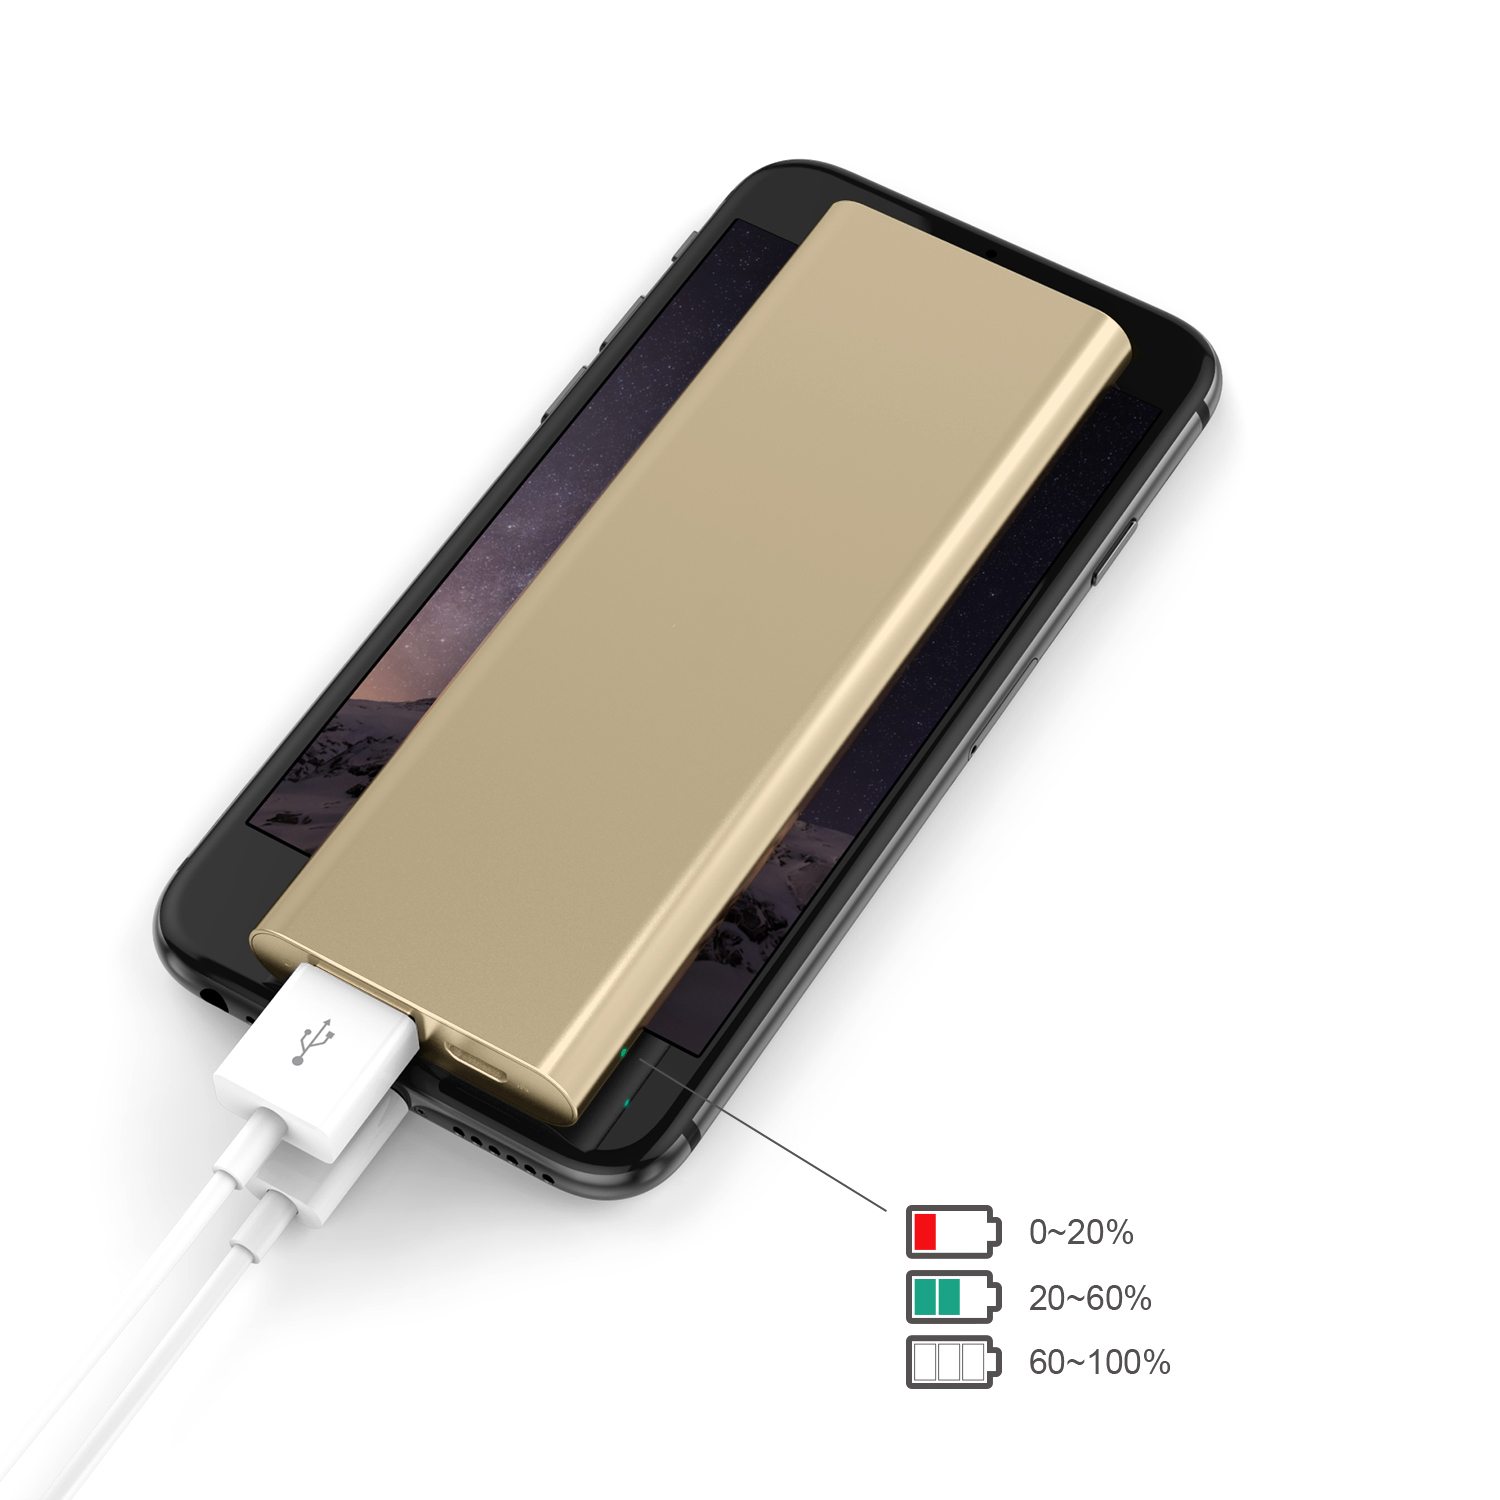 3300 mAh Portable External Battery Charger Power Bank Zinc Alloy Gold Firefly PE-A1B 2